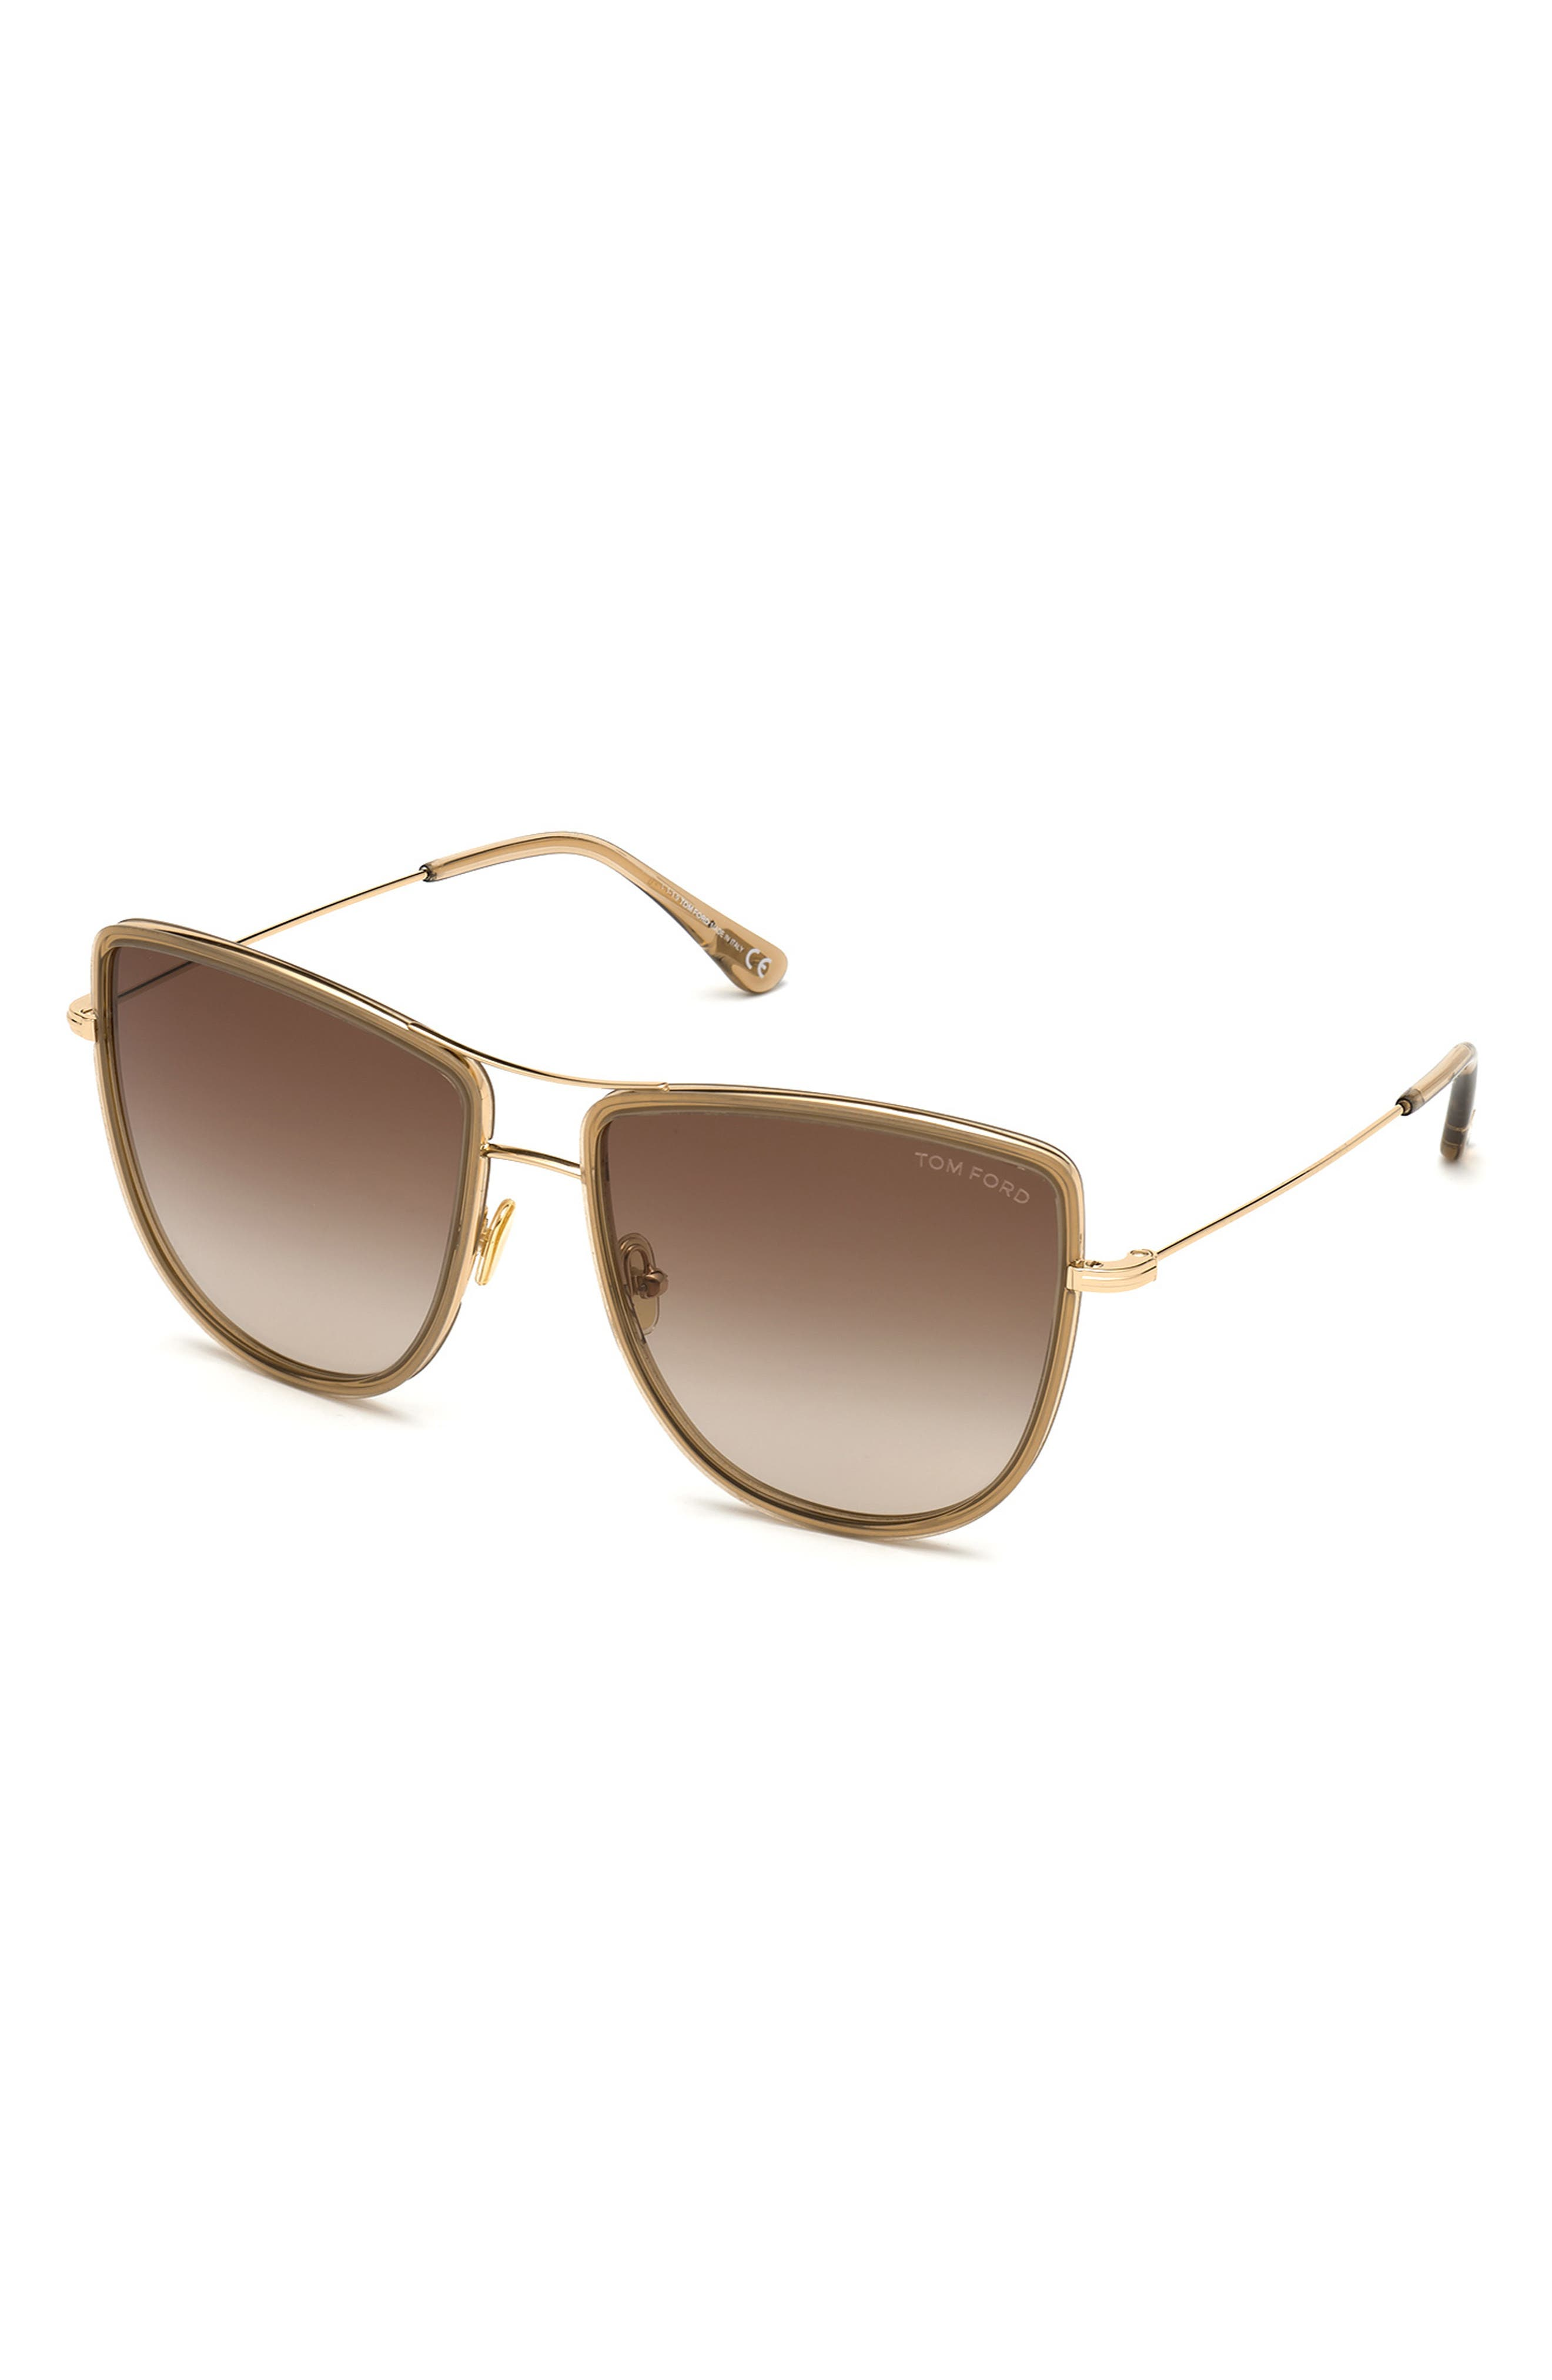 Image of Tom Ford Tina 59mm Aviator Sunglasses